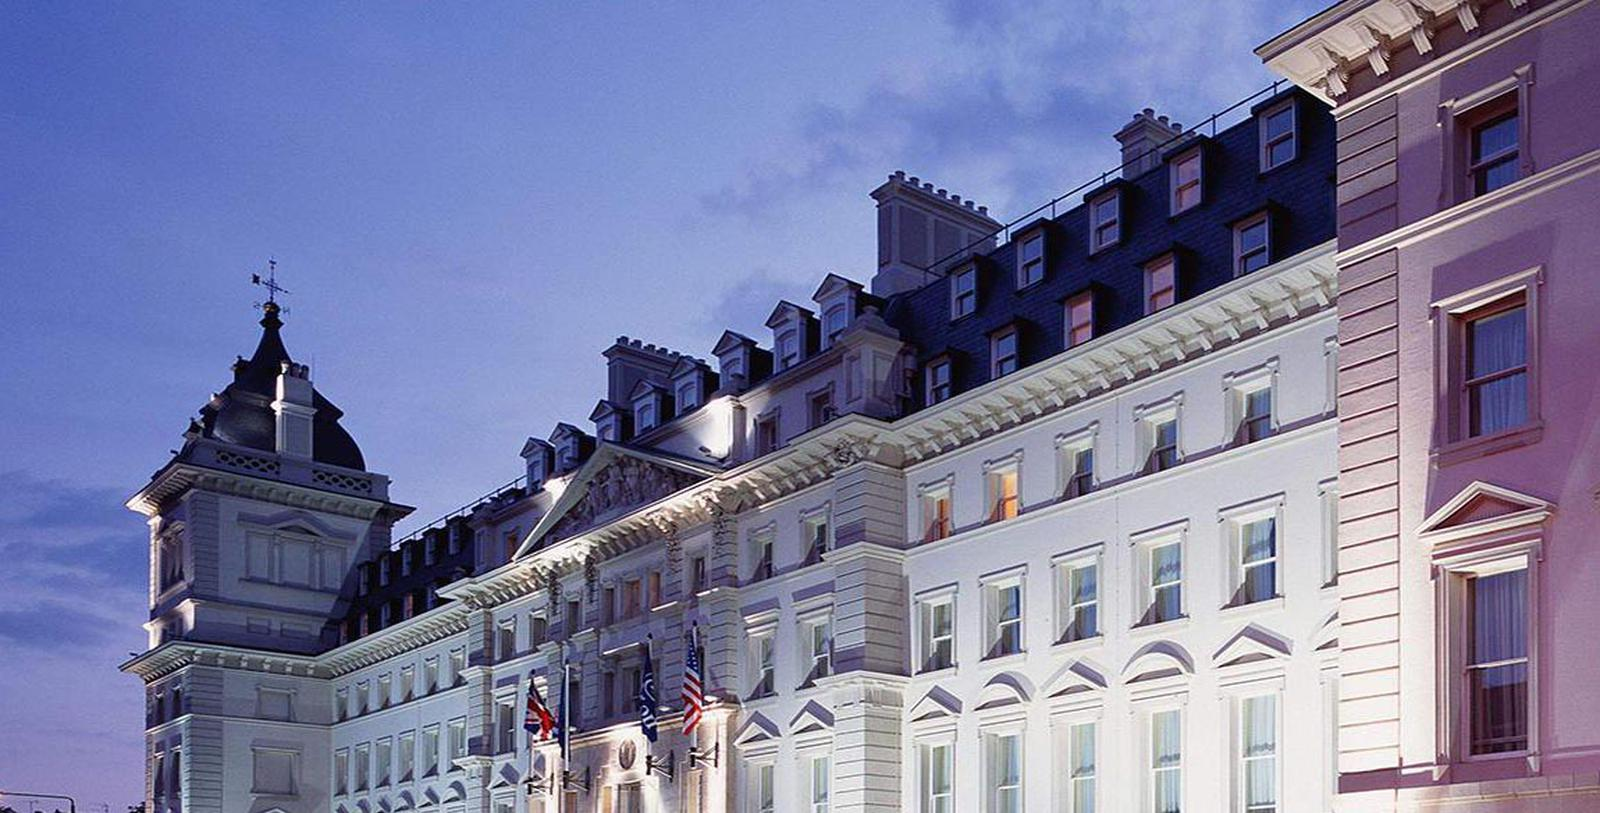 Image of Exterior at Night, Hilton London Paddington, United Kingdom, 1854, Member of Historic Hotels Worldwide, Overview